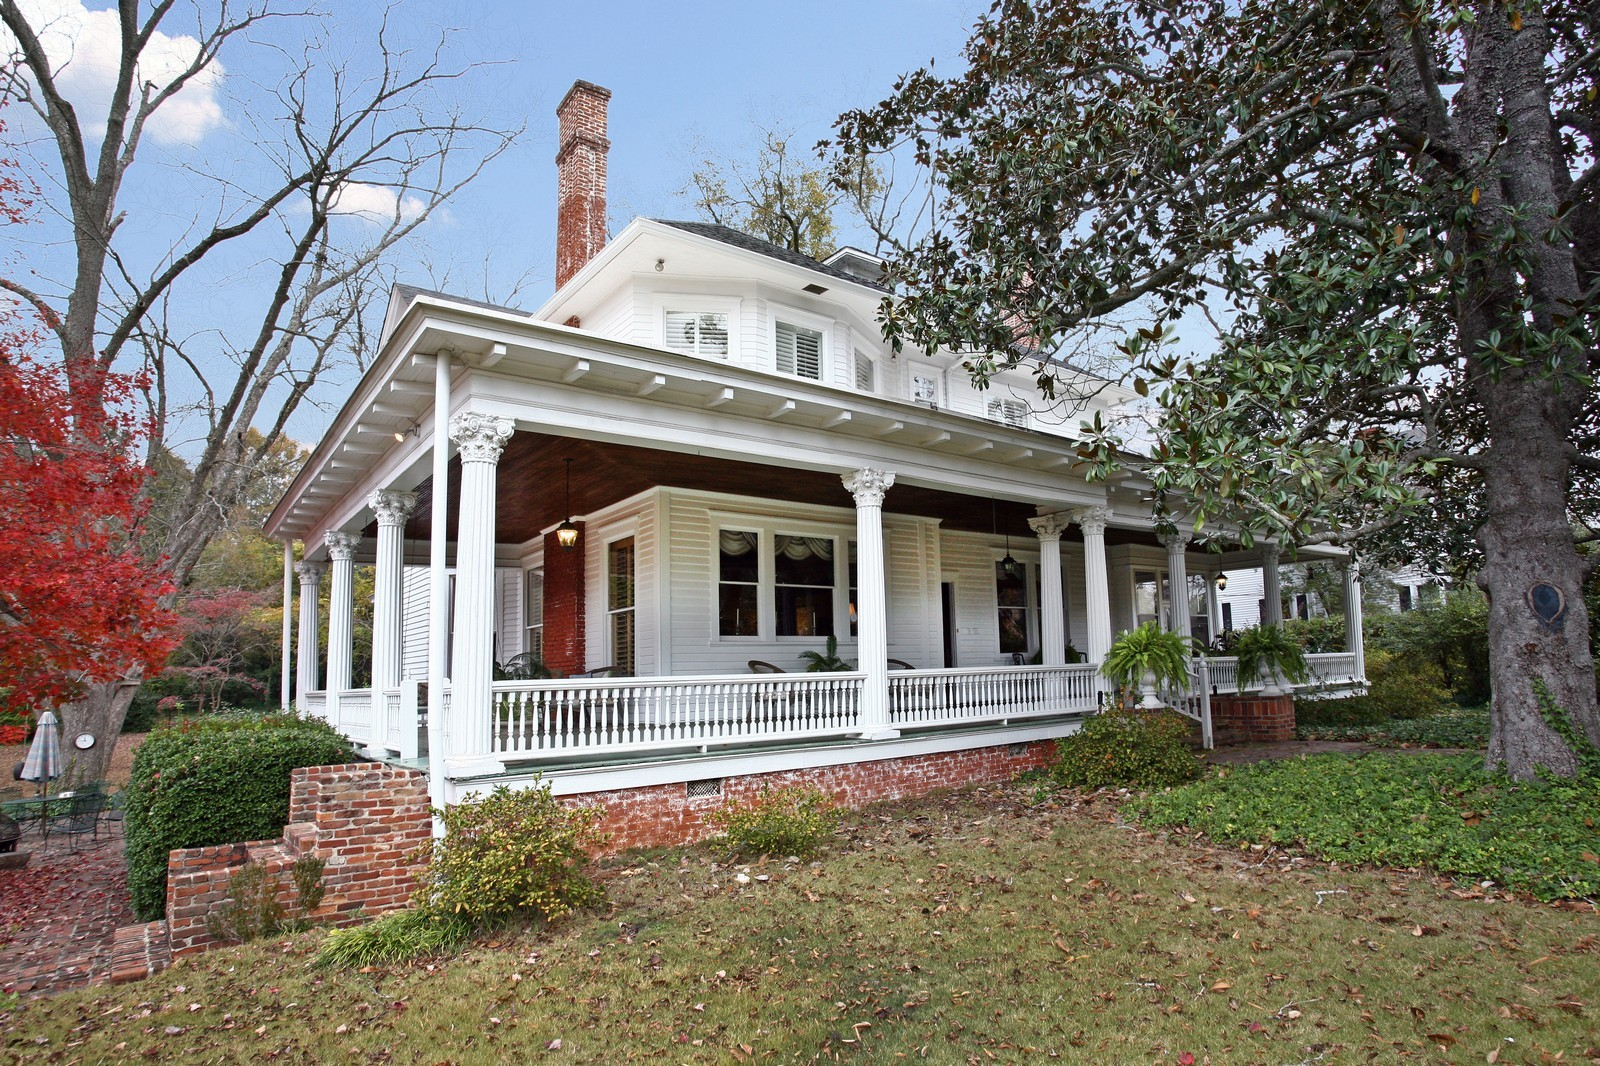 Real Estate Photography - 414 N 14th St, Lanett, AL, 36863 - Side View